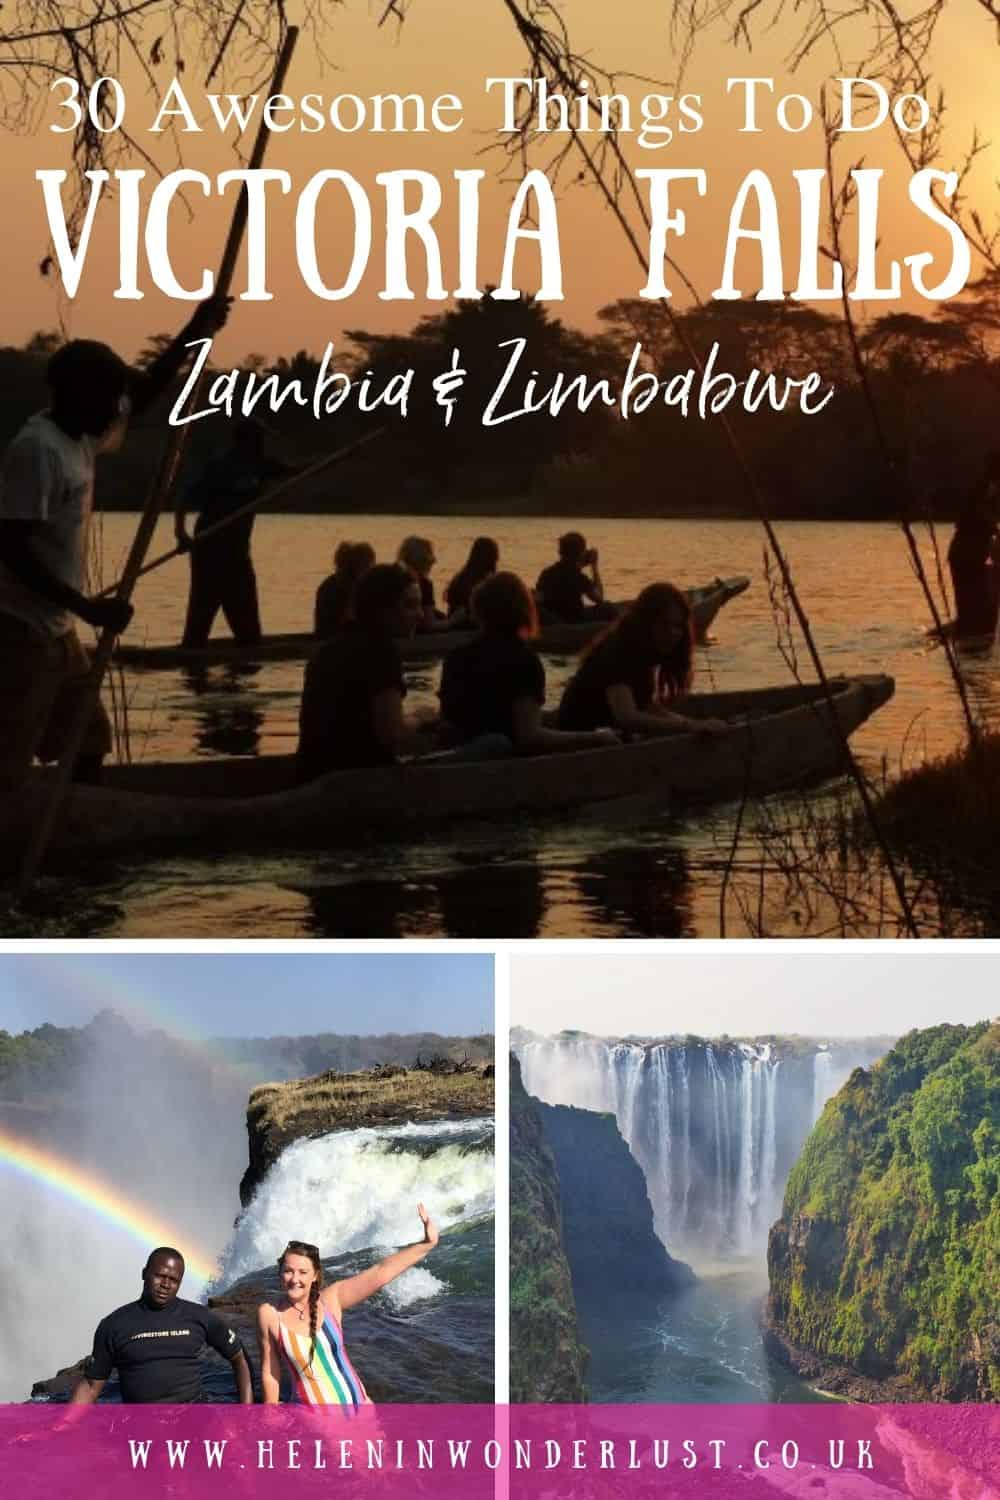 The Best Things To Do at Victoria Falls - Zambia & Zimbabwe